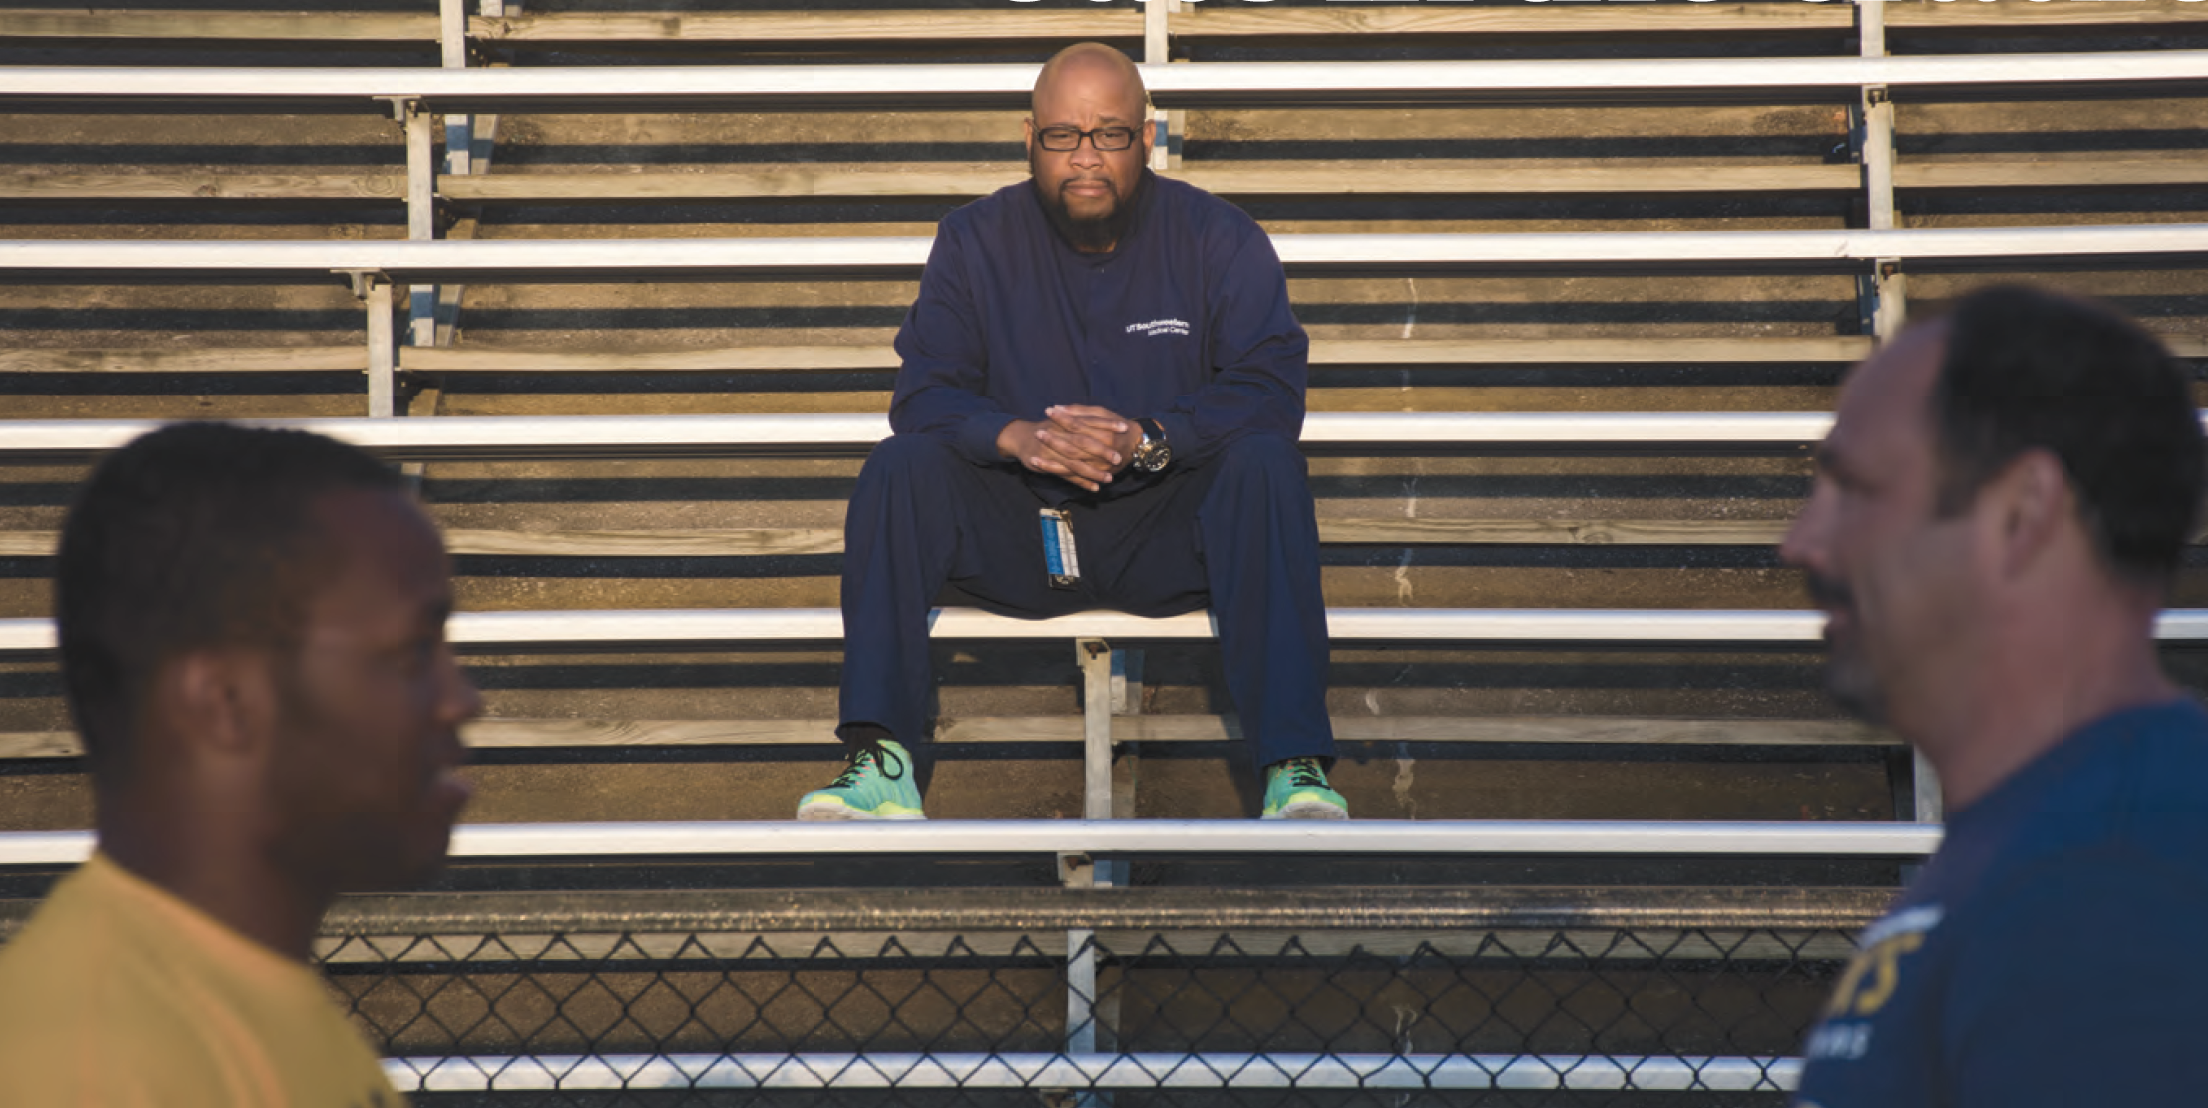 Preston Gilstrap looks on from his spot in the bleachers as head coach Bart Epperson gives his son valuable words of wisdom in life and on the football field.